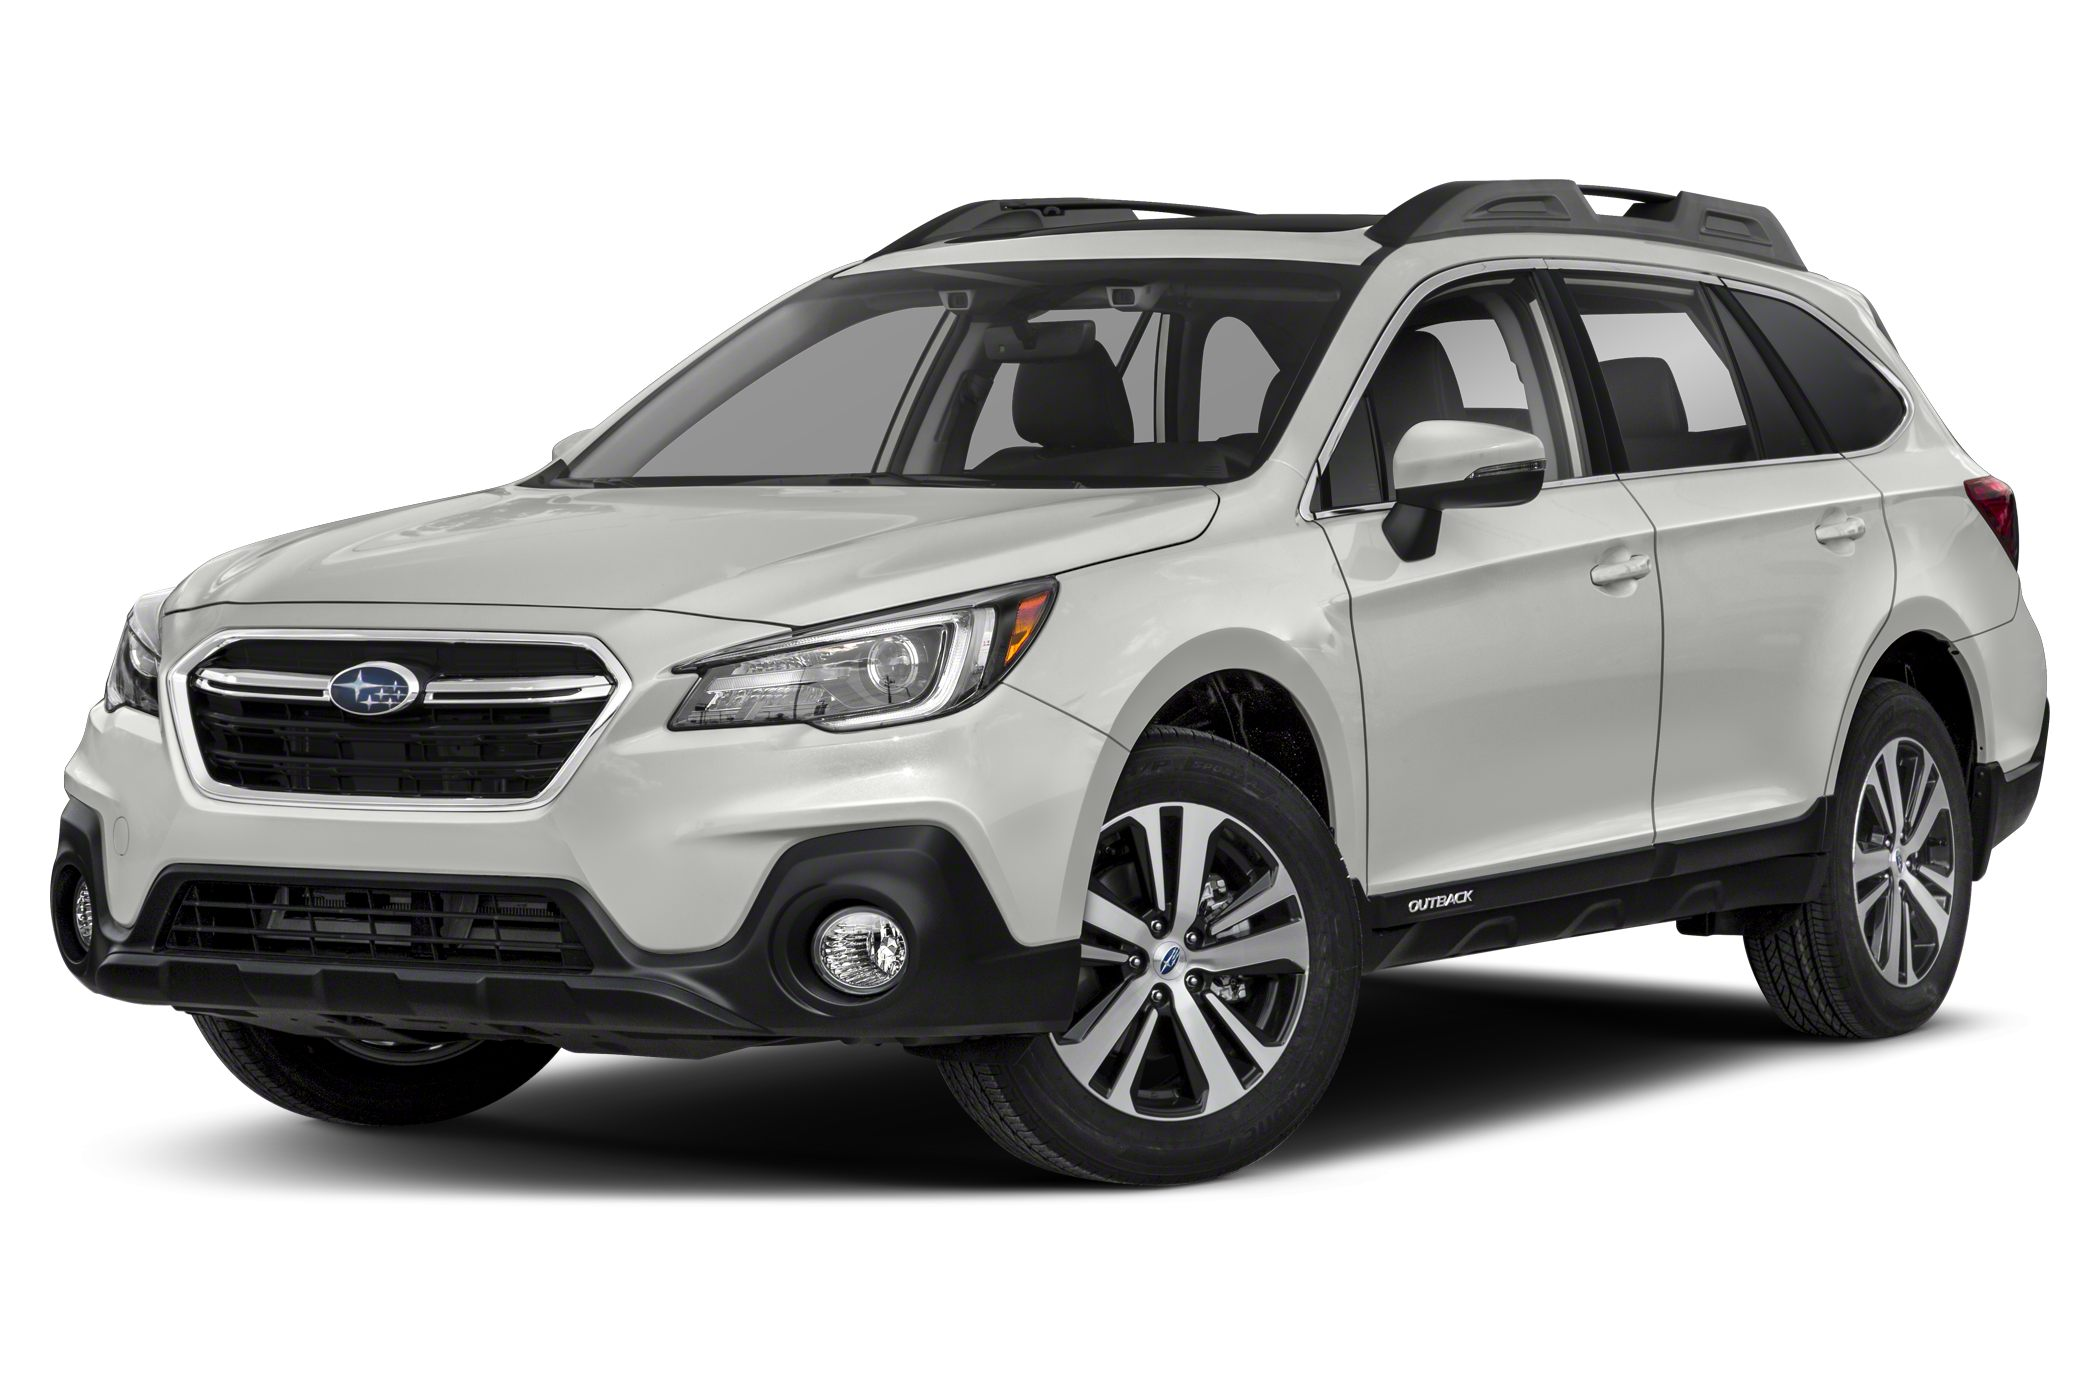 2018 Subaru Outback 3.6R Limited 4dr All-wheel Drive